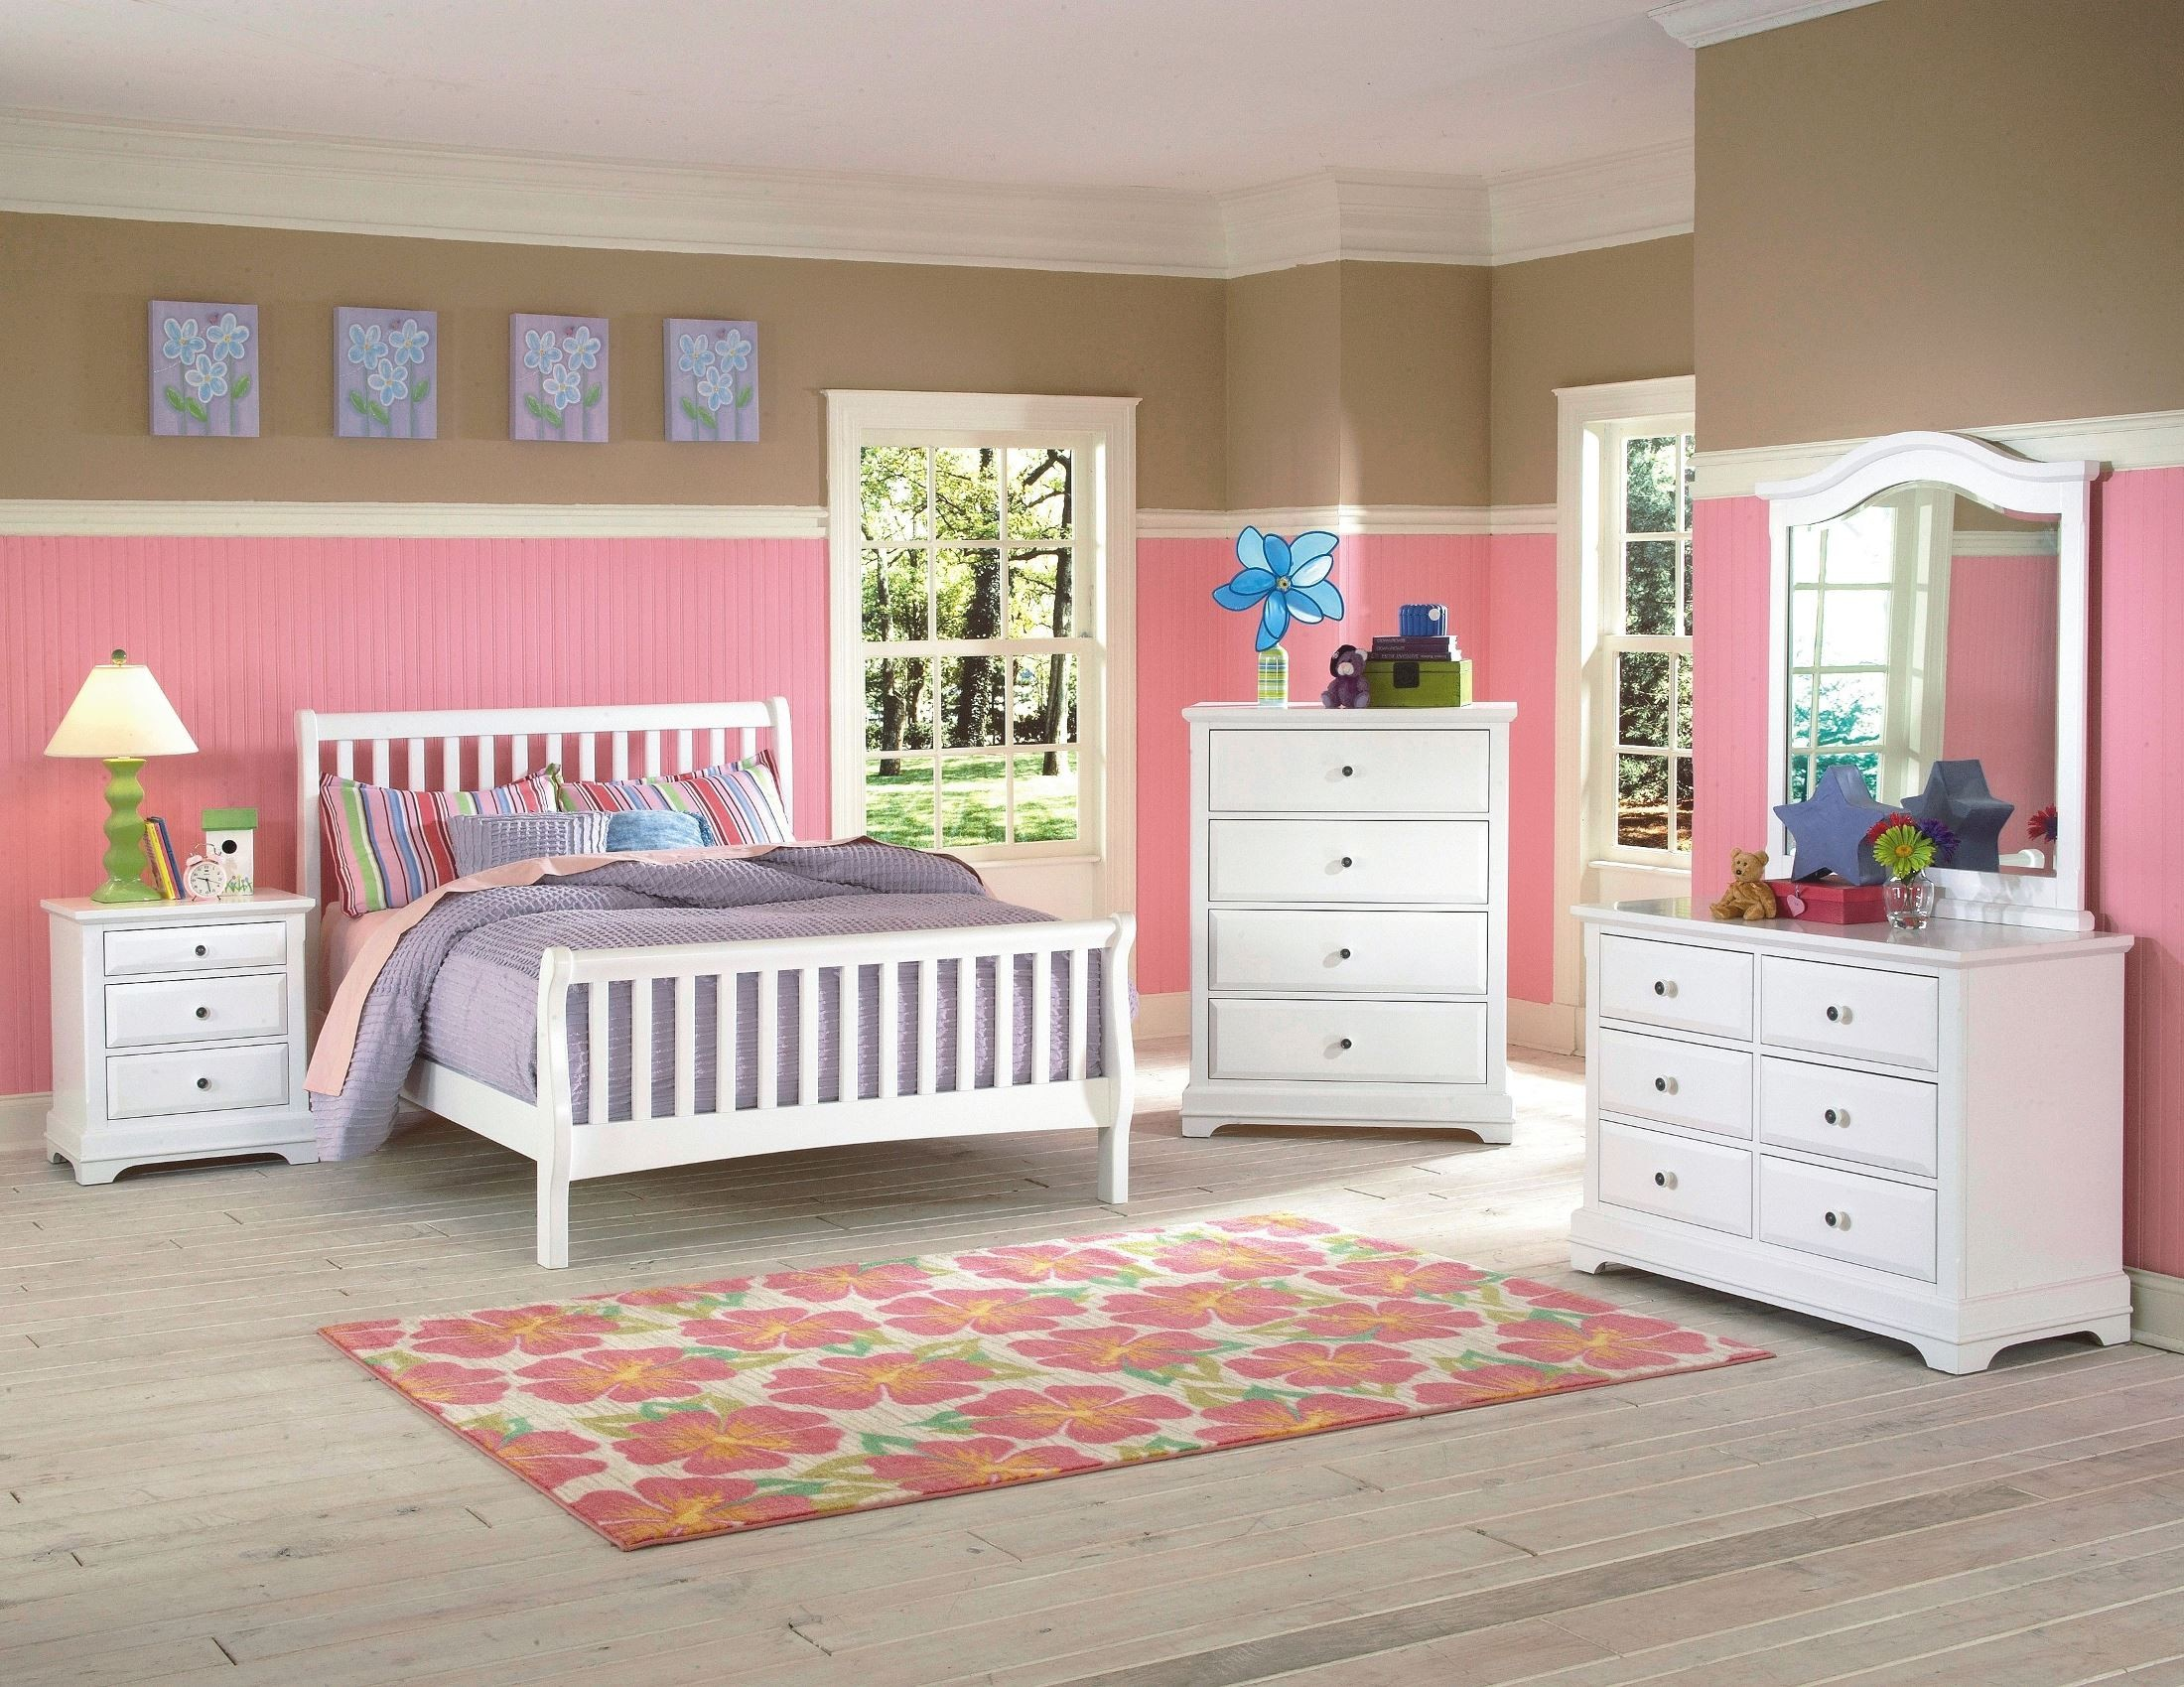 Bayfront White Youth Slat Bedroom Set From New Classics 1415 513 523 533 Coleman Furniture